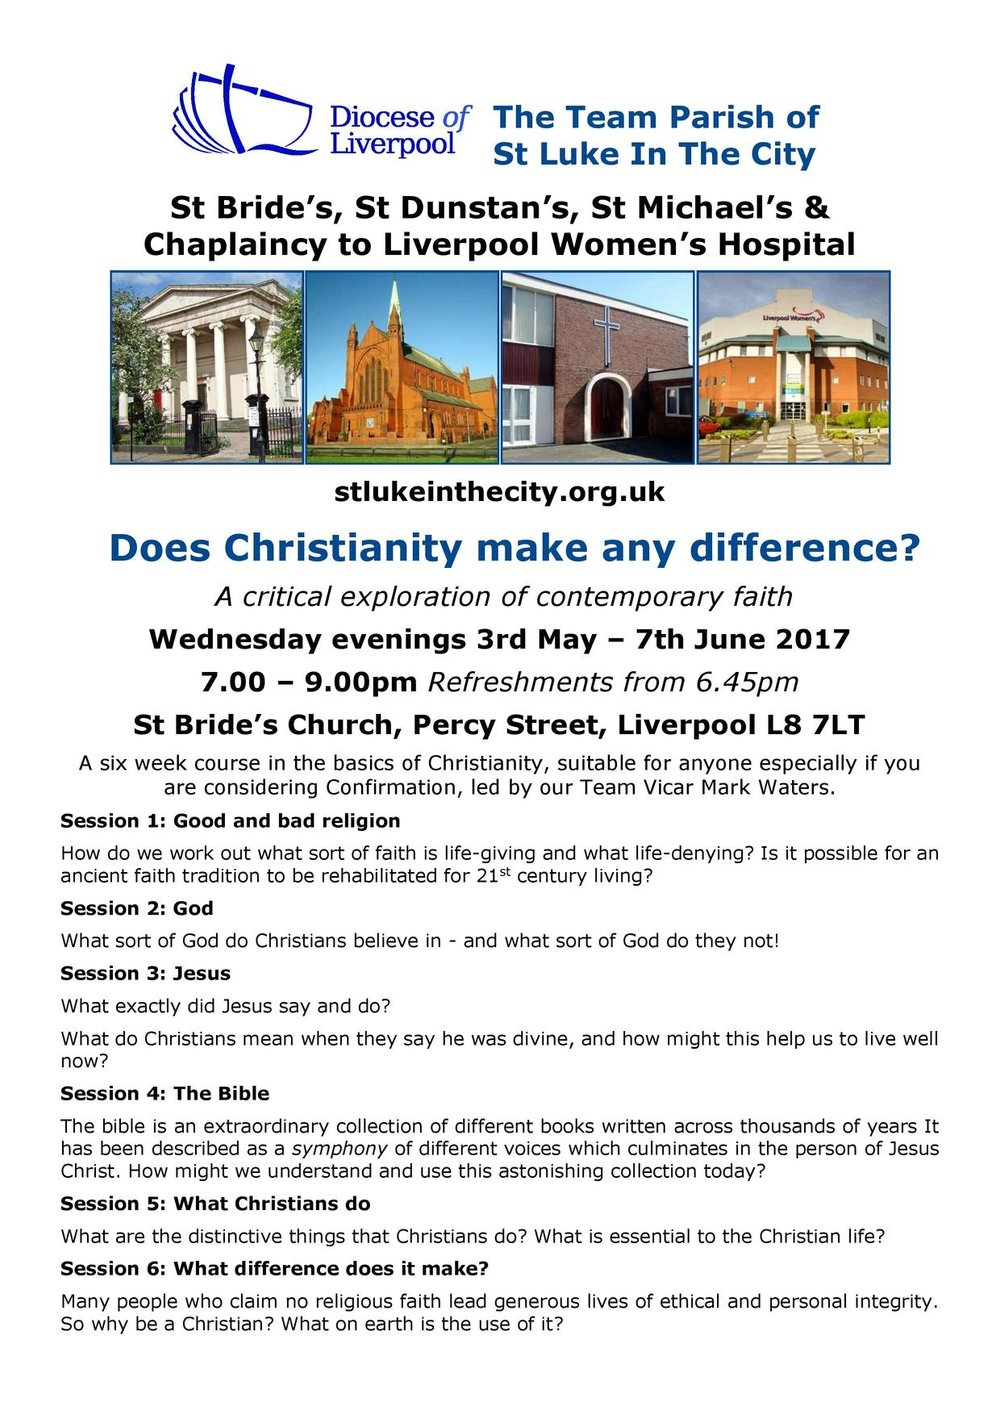 does_christianity_make_any_difference_april-may_2017.jpg